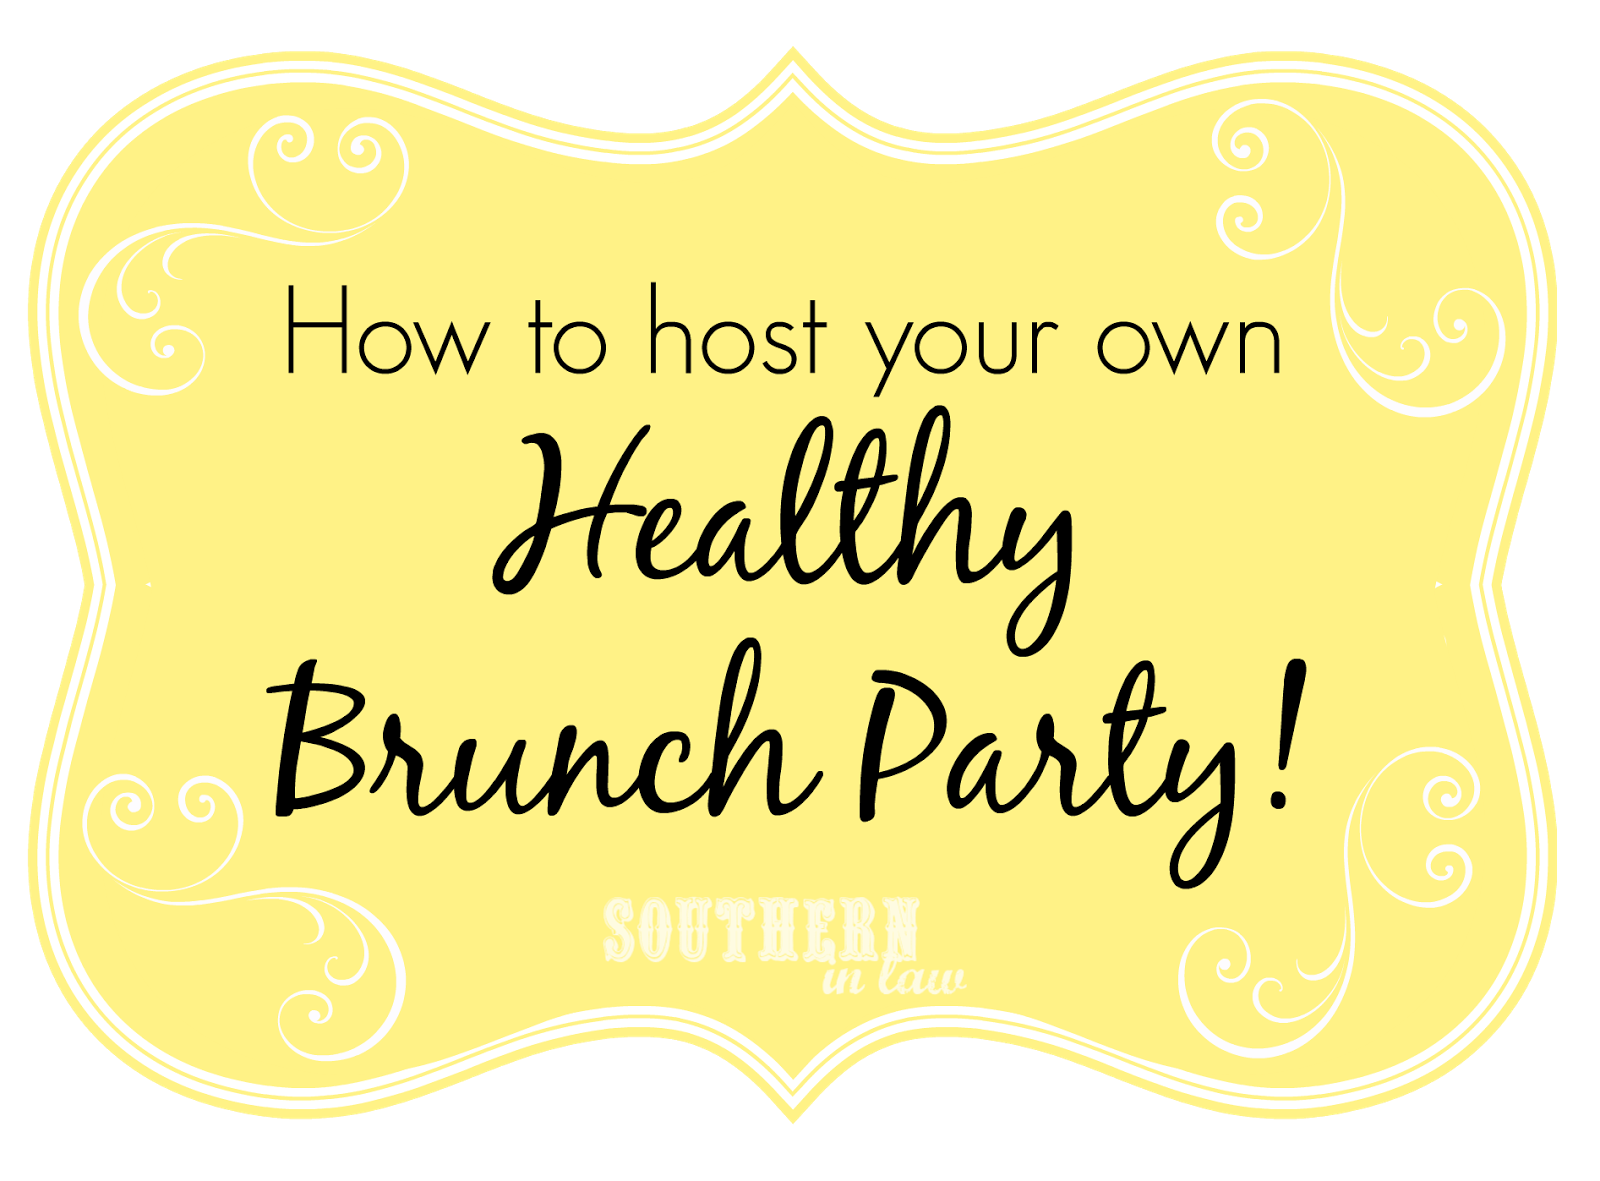 How to host your own healthy brunch party - DIY Brunch Party